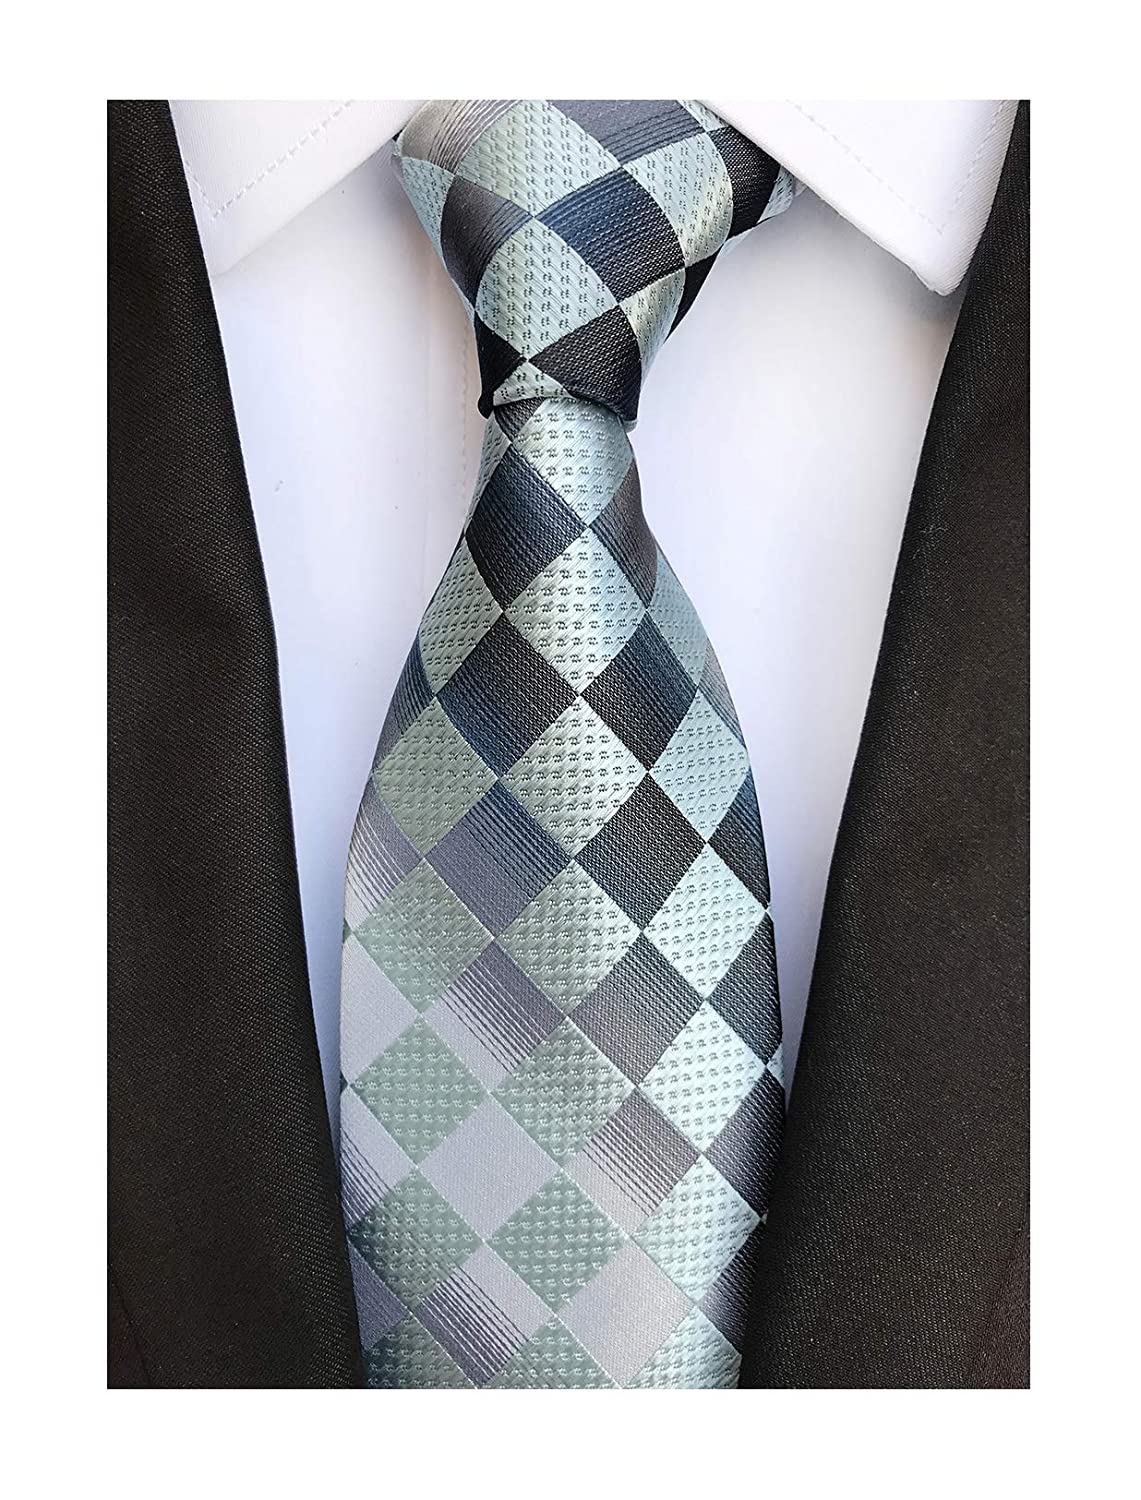 644aefdab0c6 Men's Tie For Cosplay Party Costume Accessory For Champagne Party Youth  Neckties at Amazon Men's Clothing store: